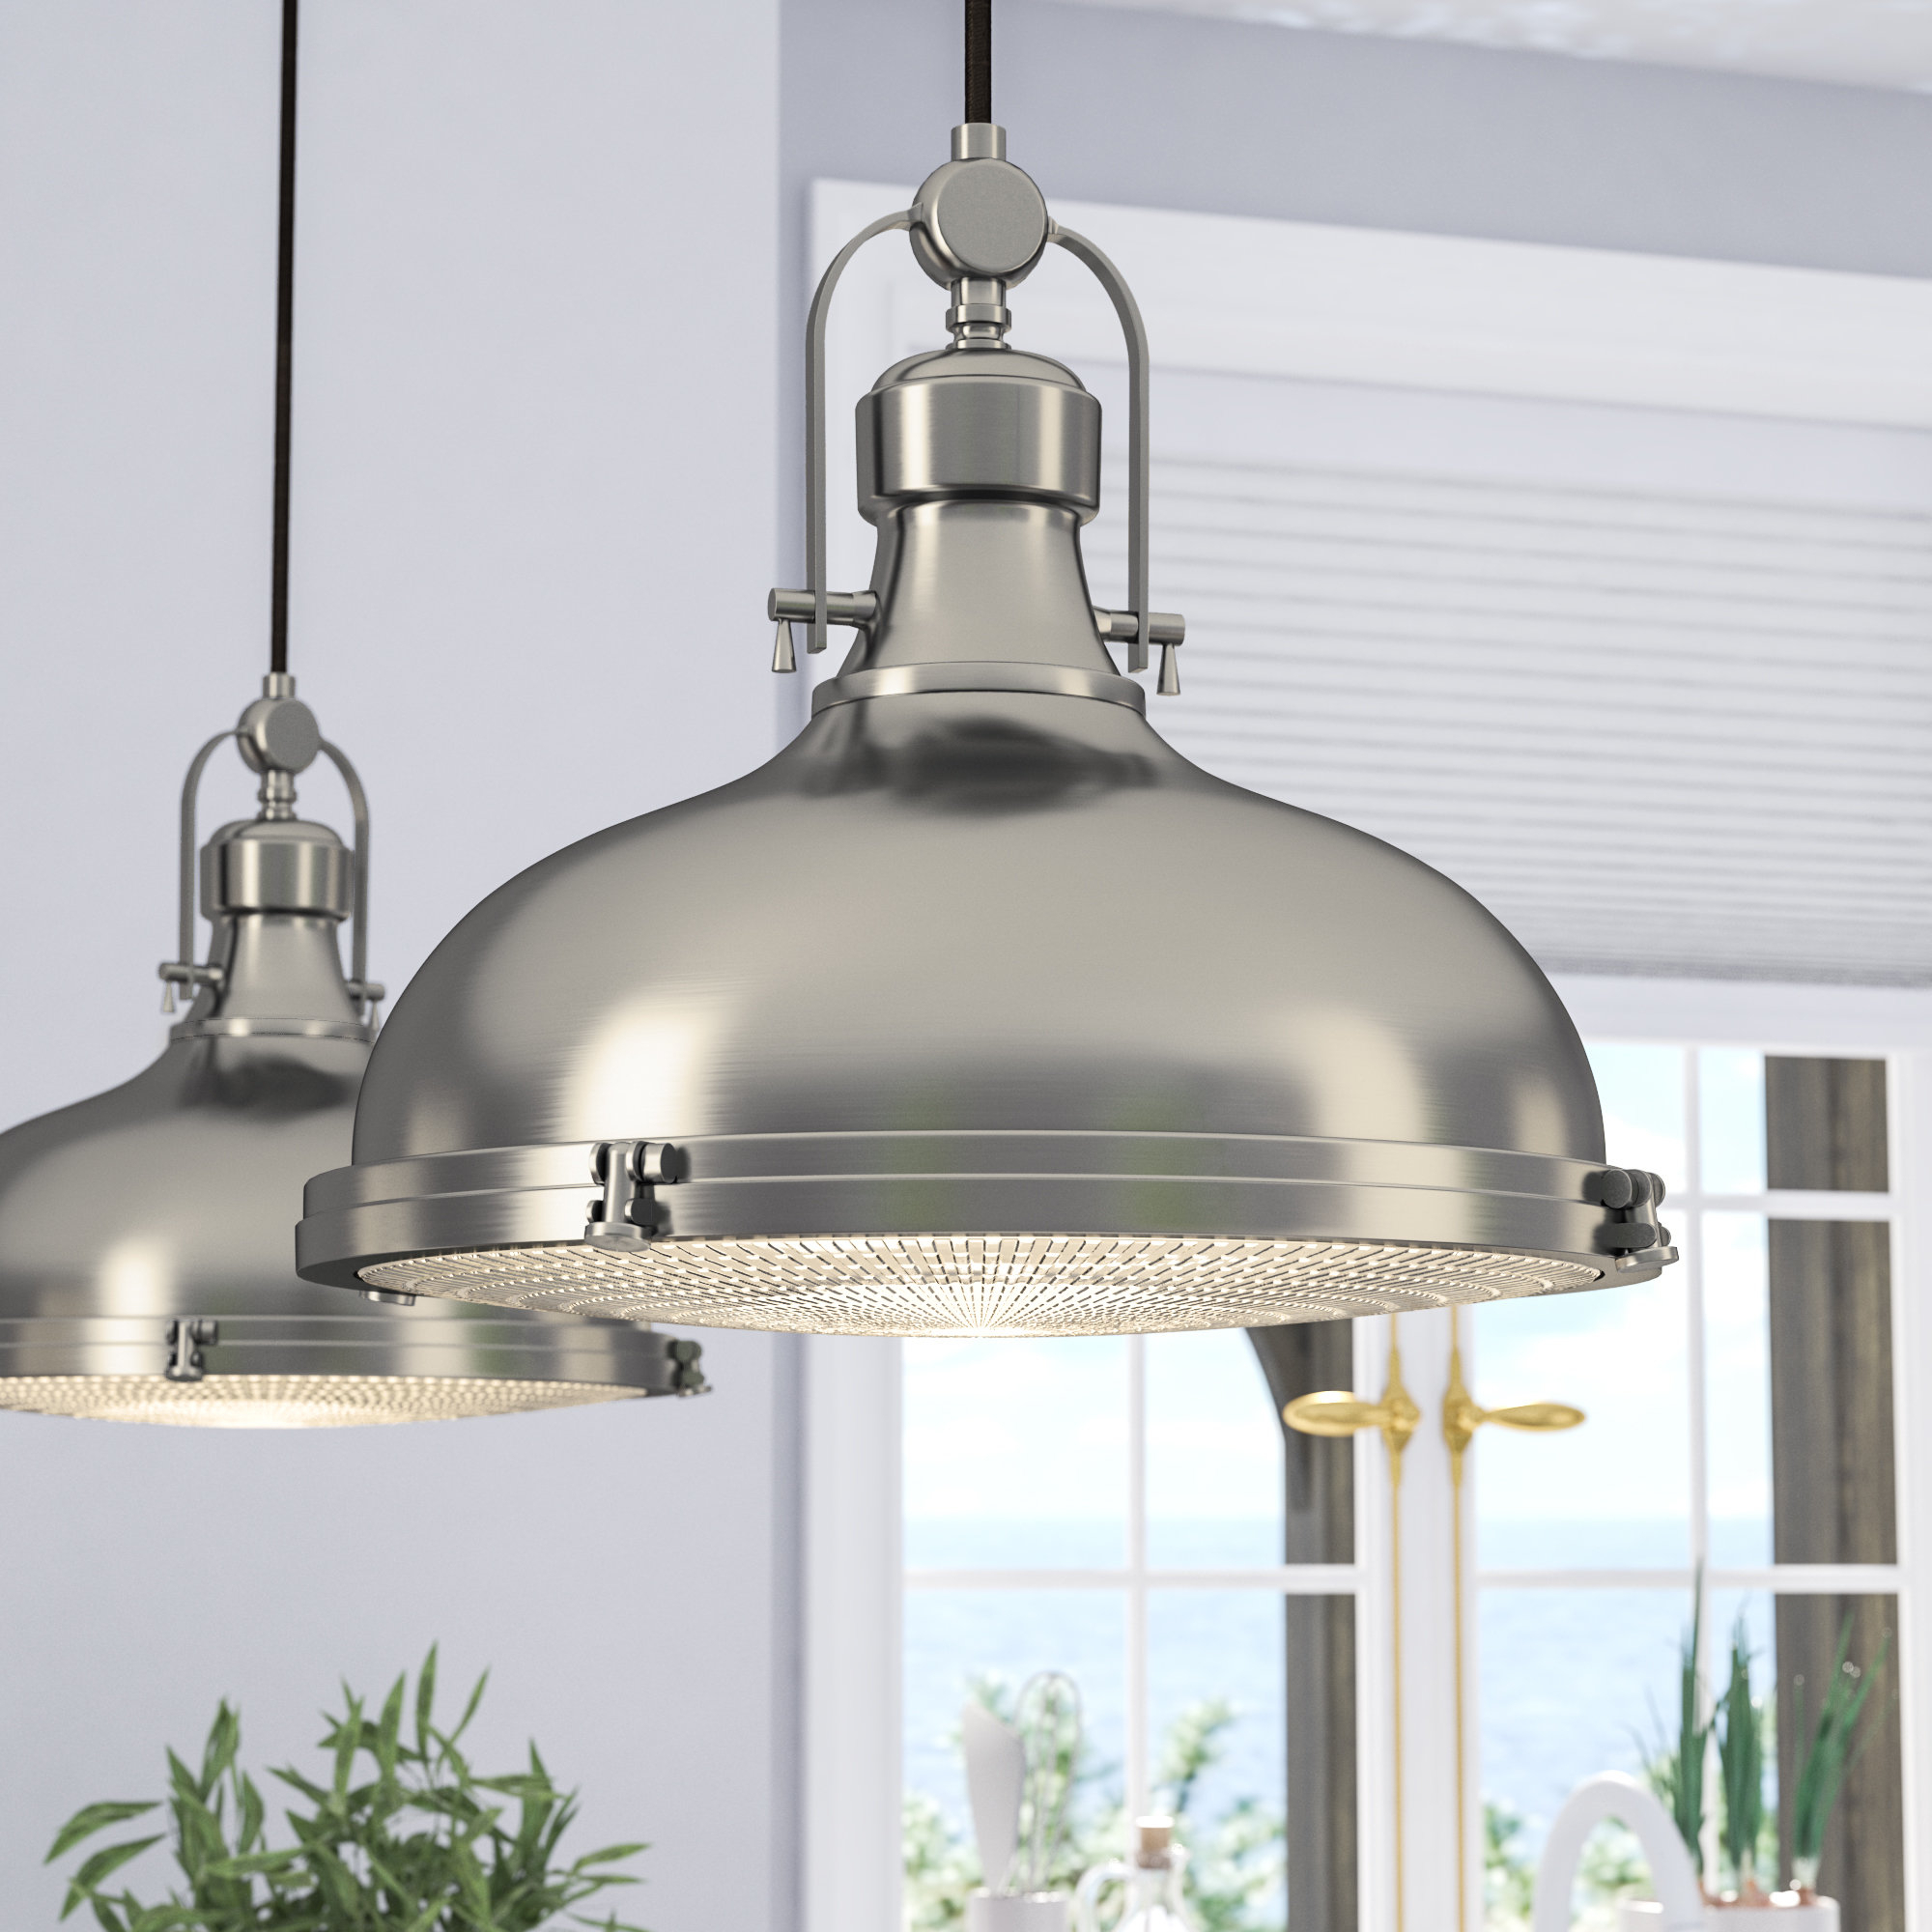 Dome Metal Pendant Lighting You'll Love In  (View 18 of 25)